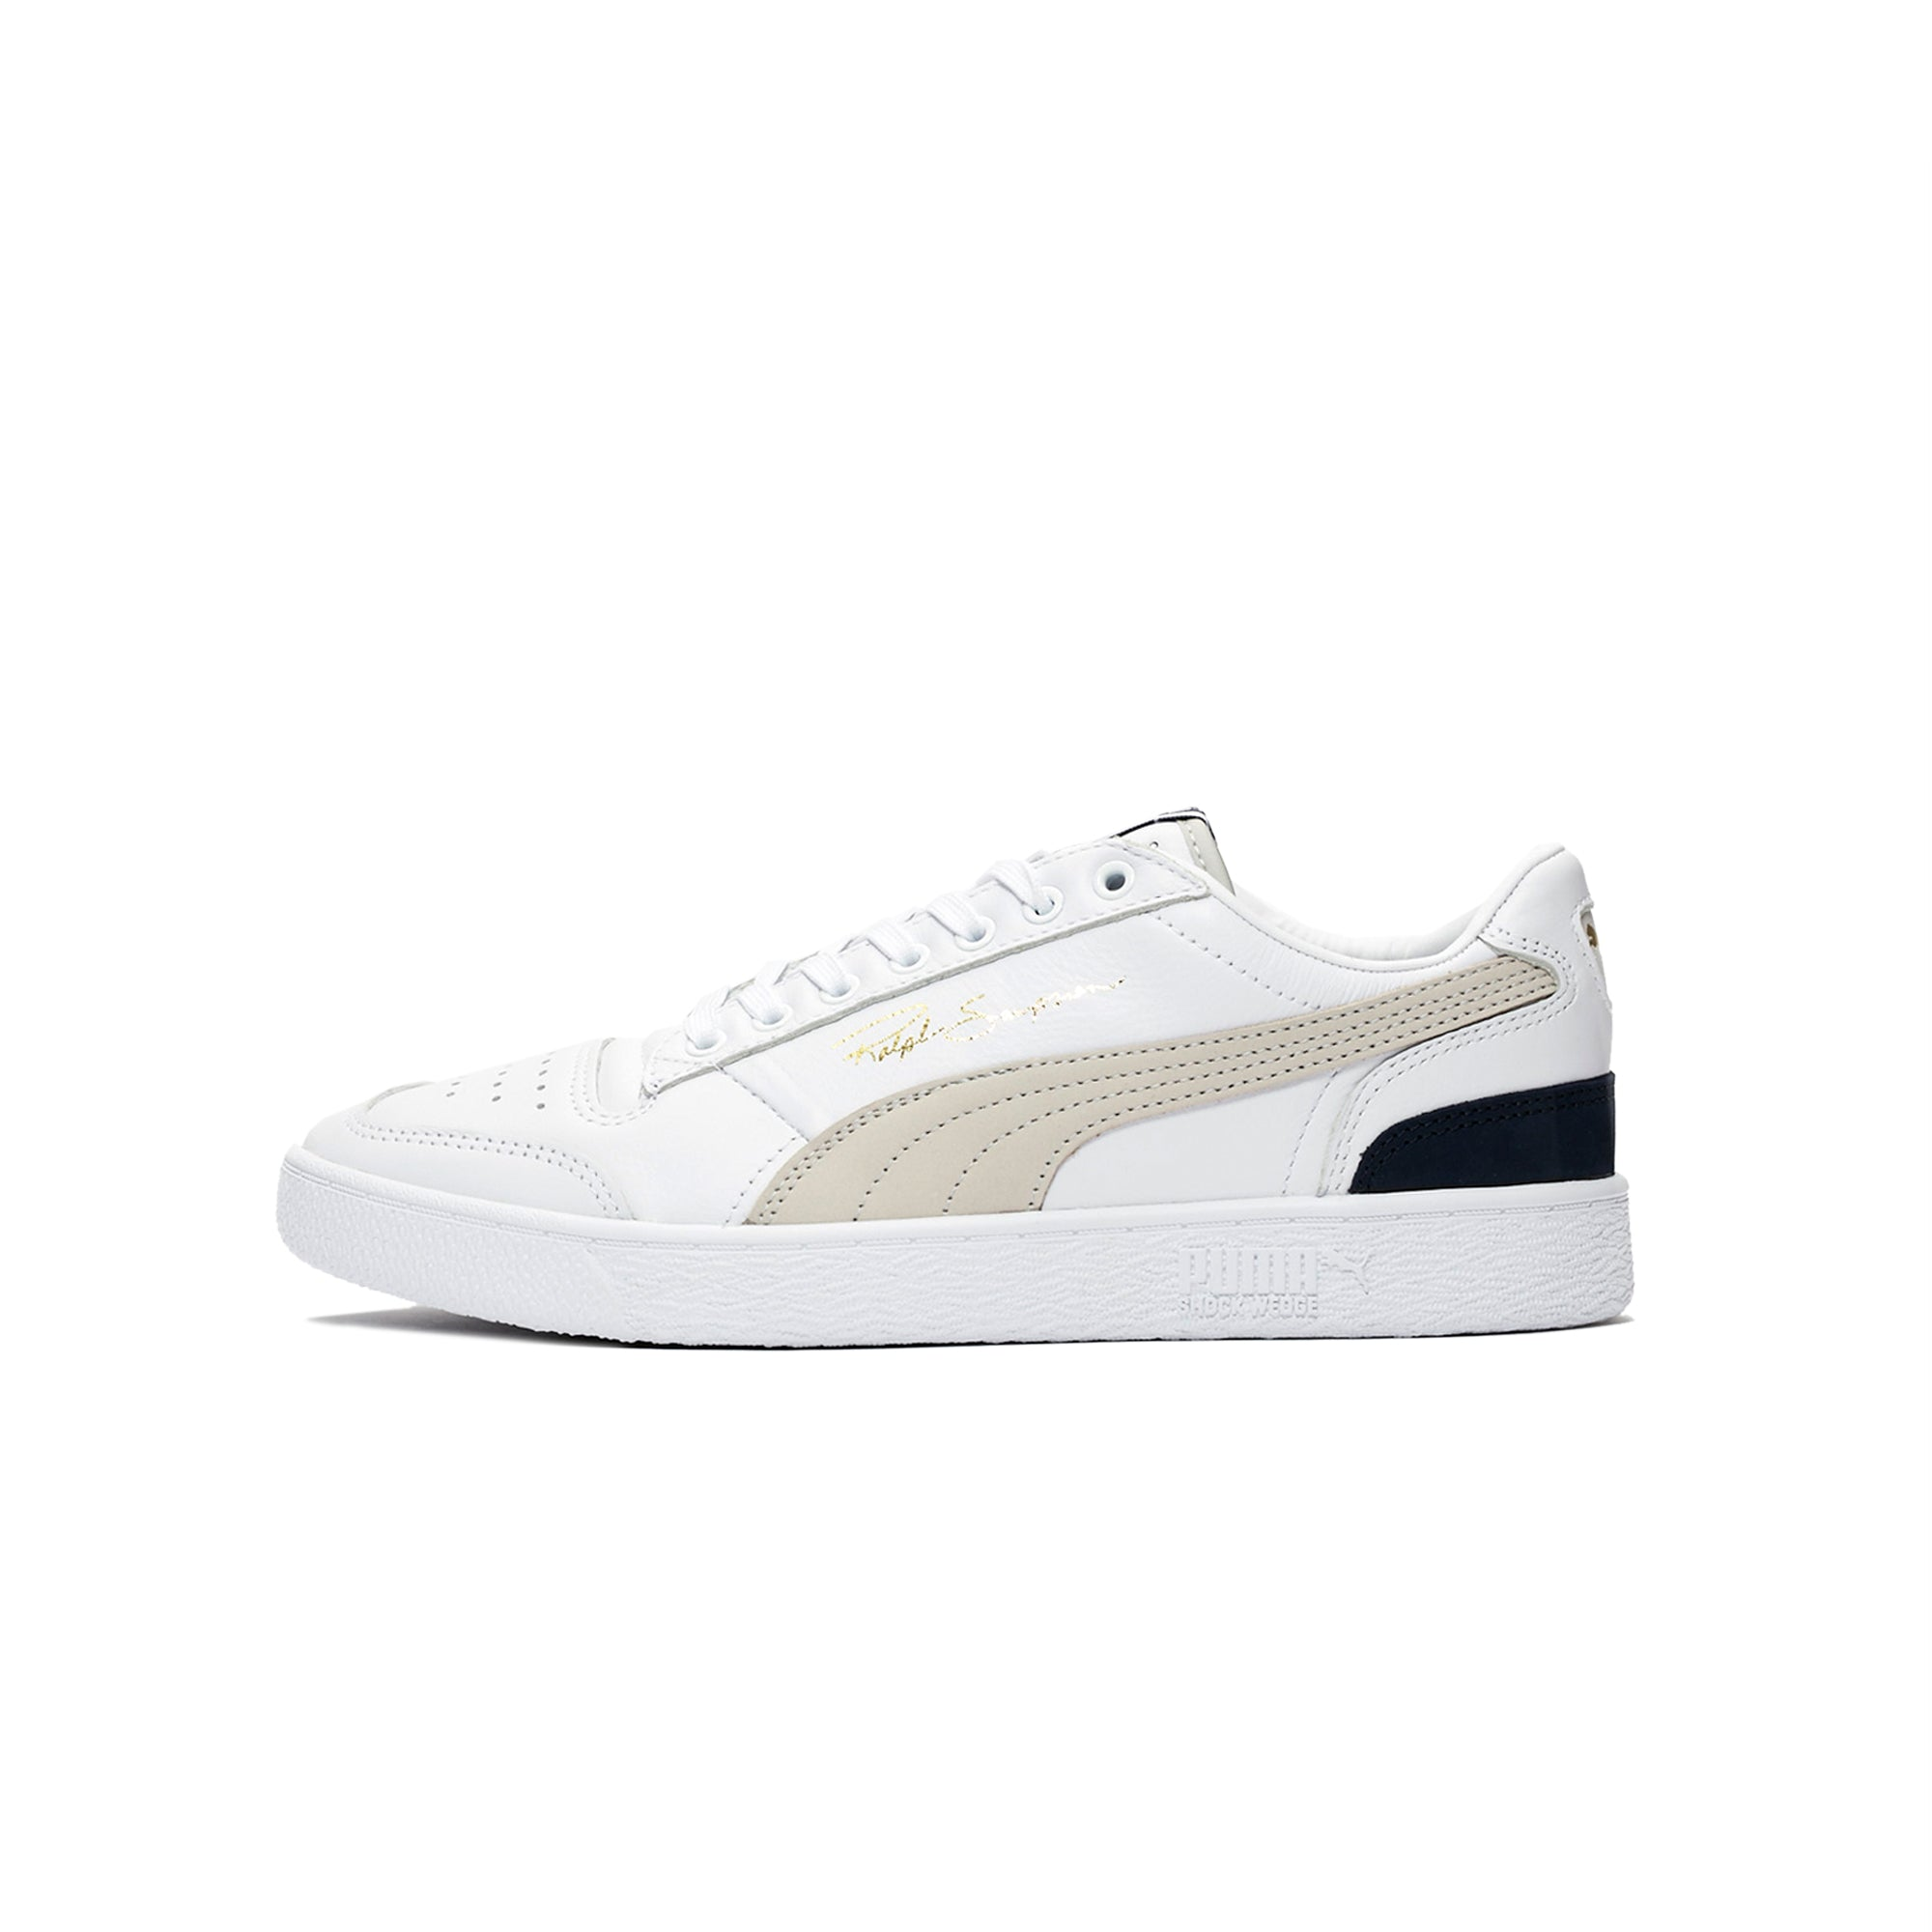 Puma Ralph Sampson Low OG [370719 01]